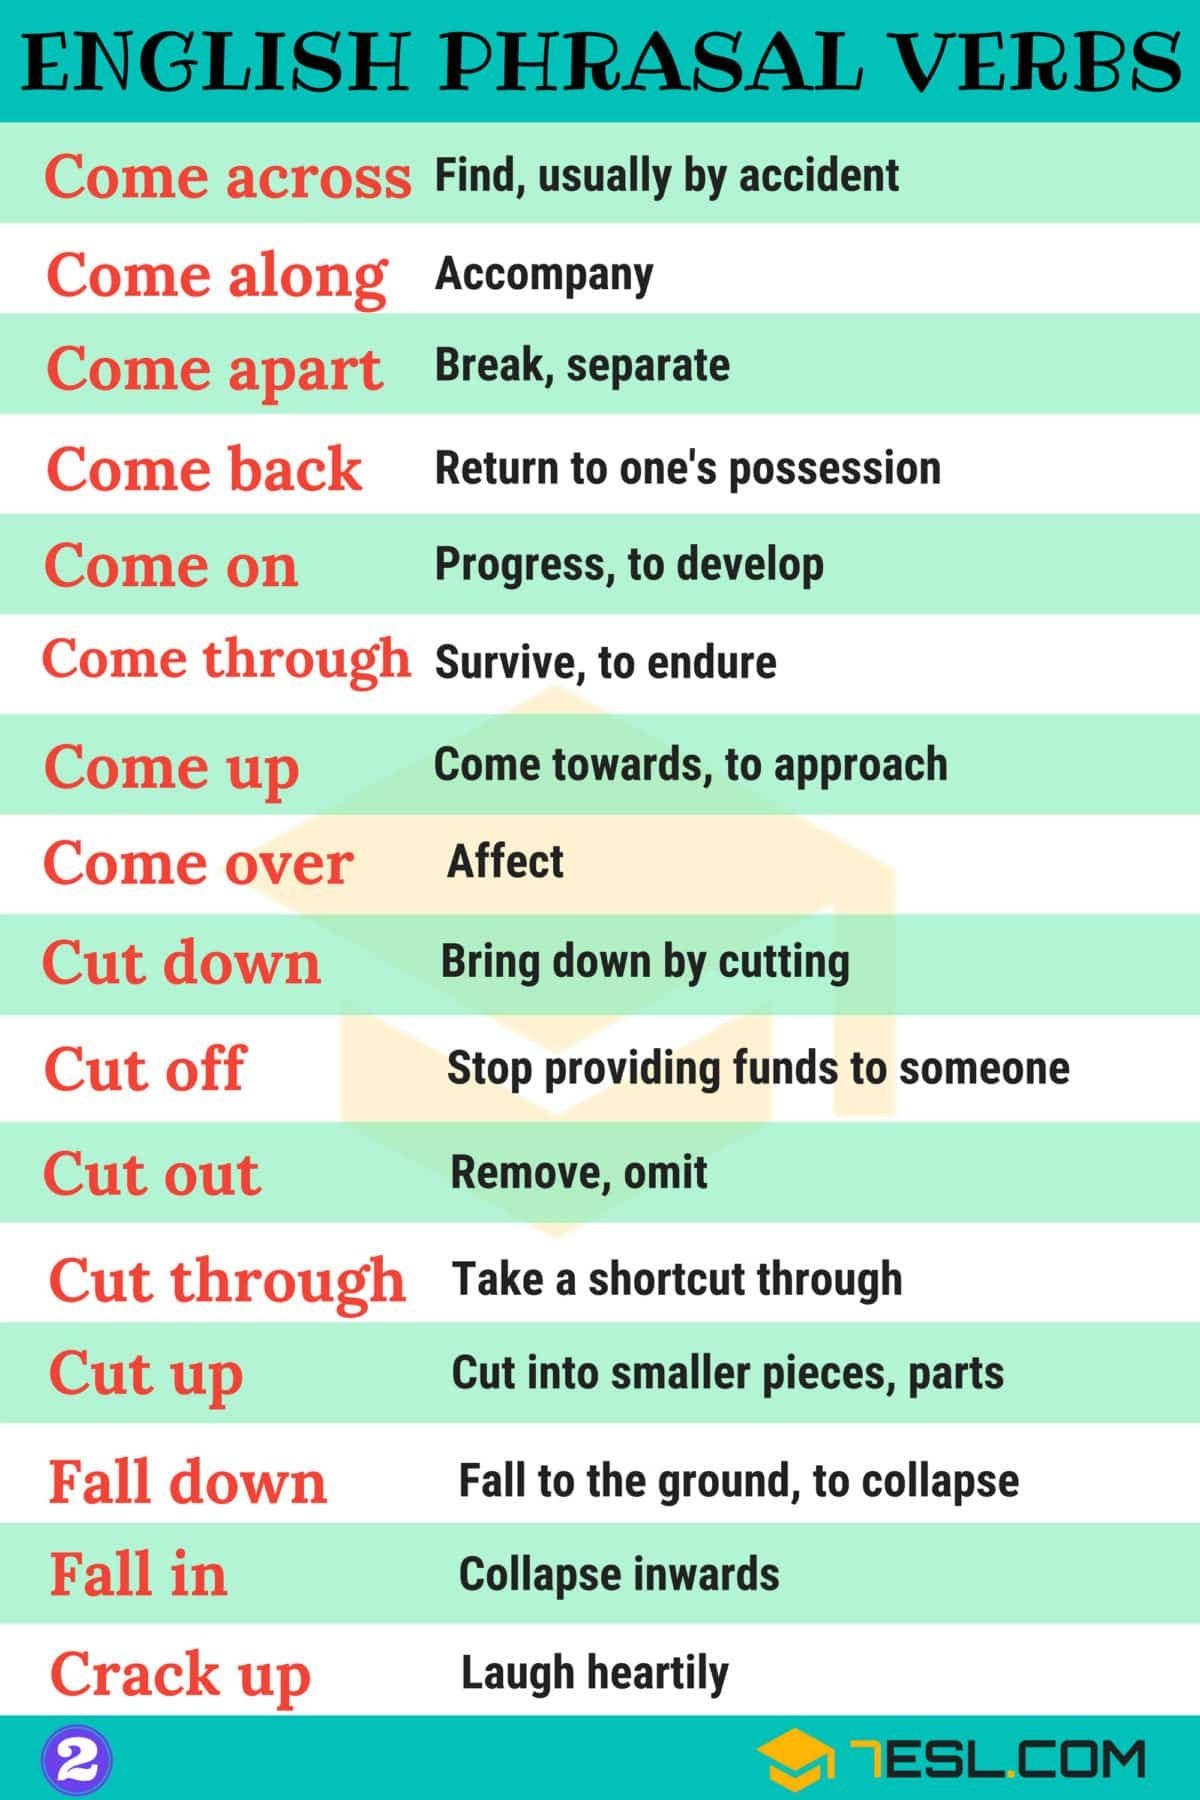 2000 Common Phrasal Verbs List From A Z English Verbs English